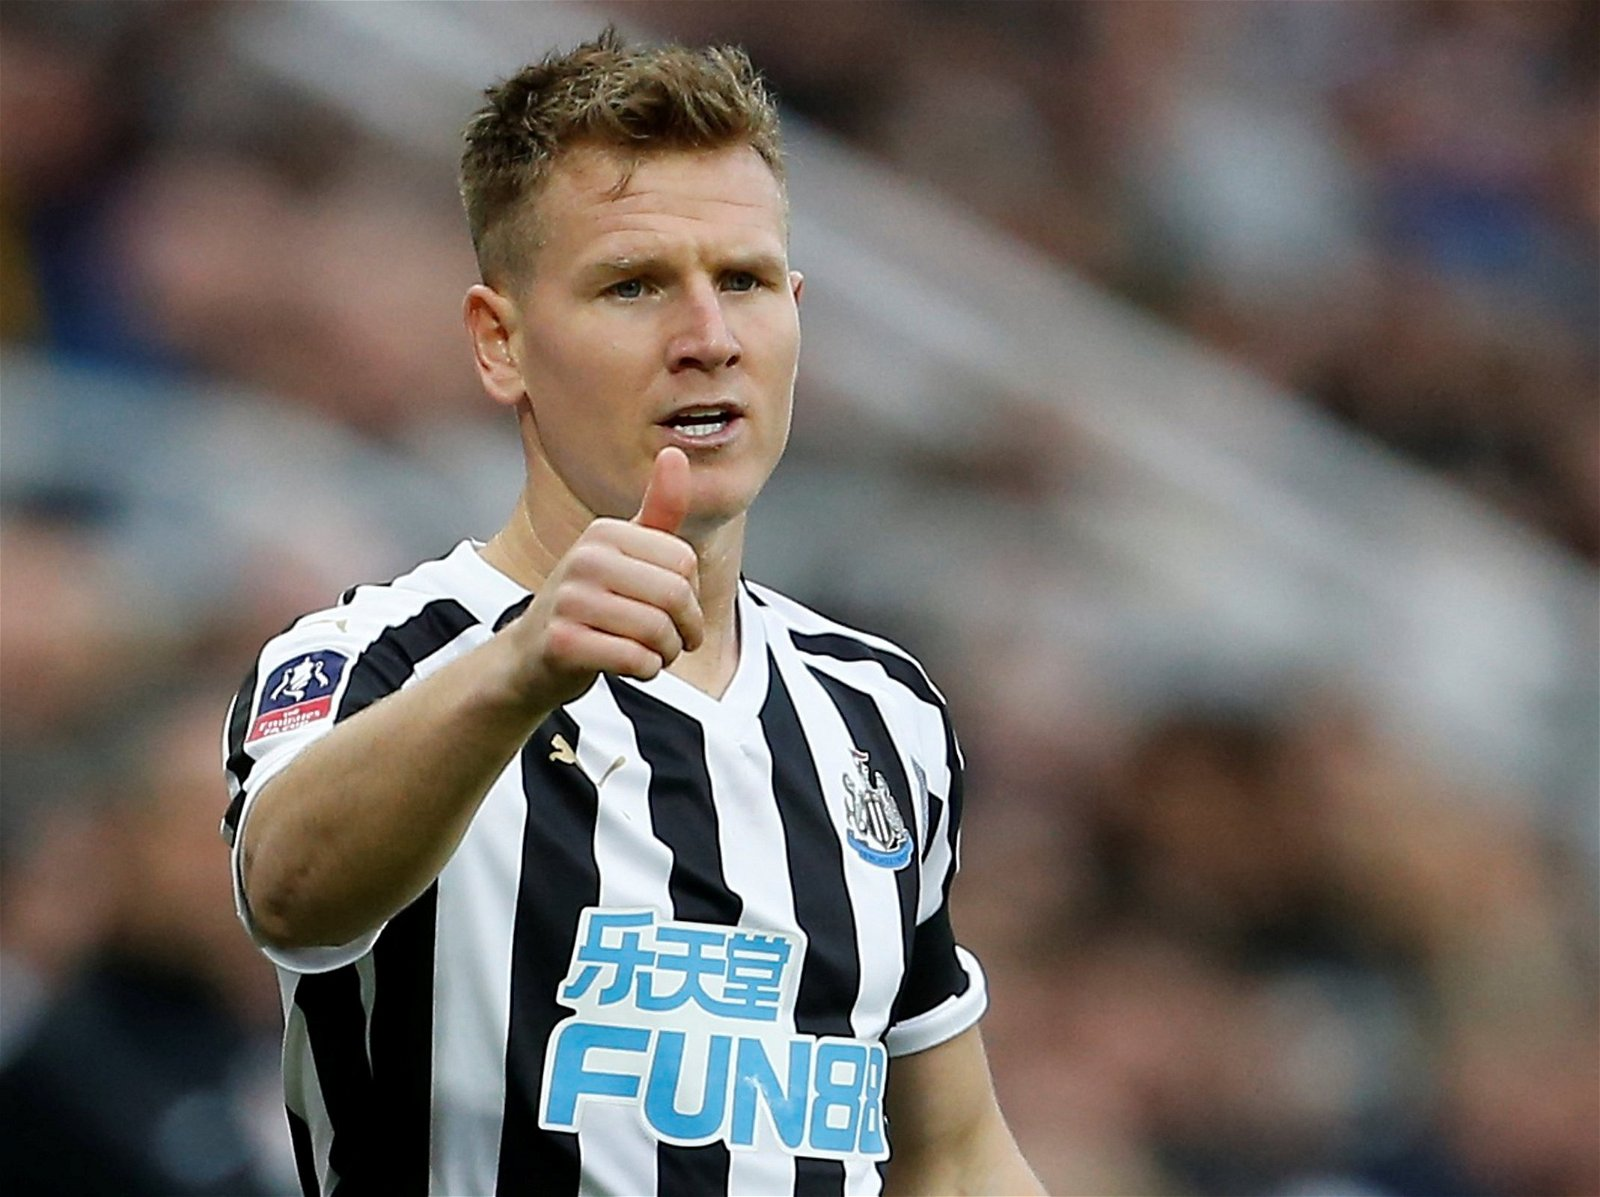 Matt Ritchie with a thumbs up